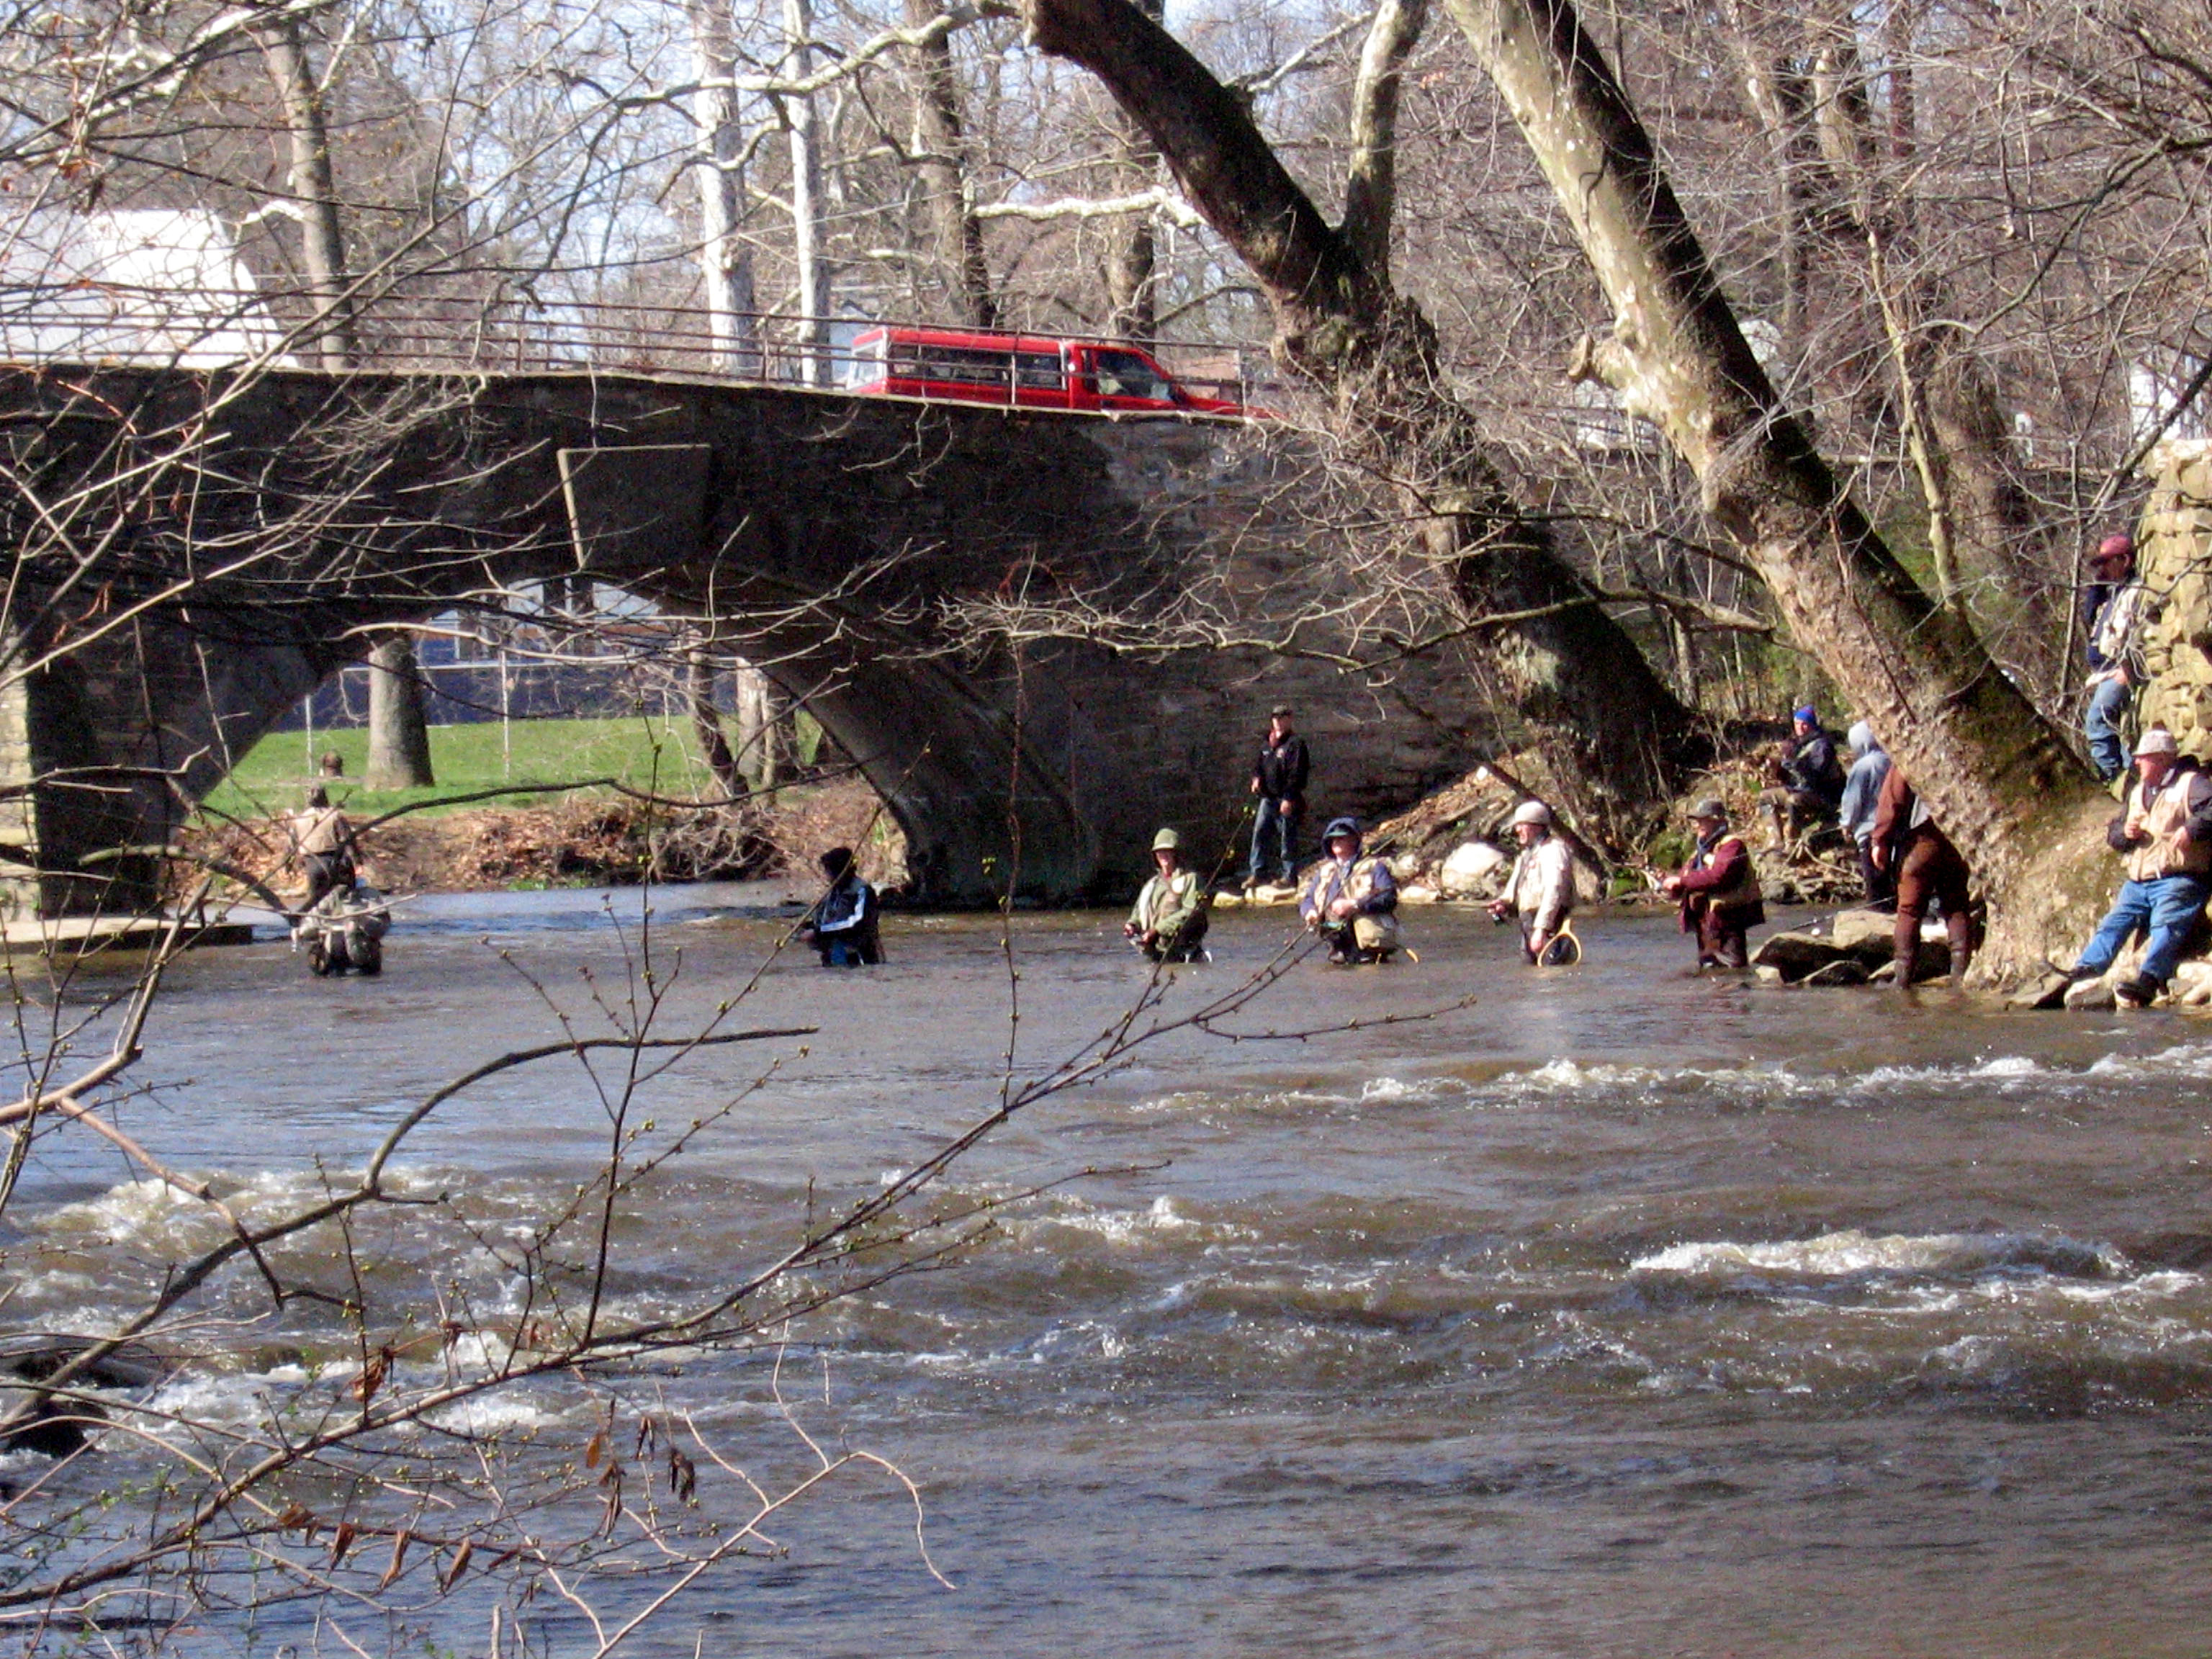 File:Trout Fishing, Yellow Breeches Creek, Boiling Springs ...